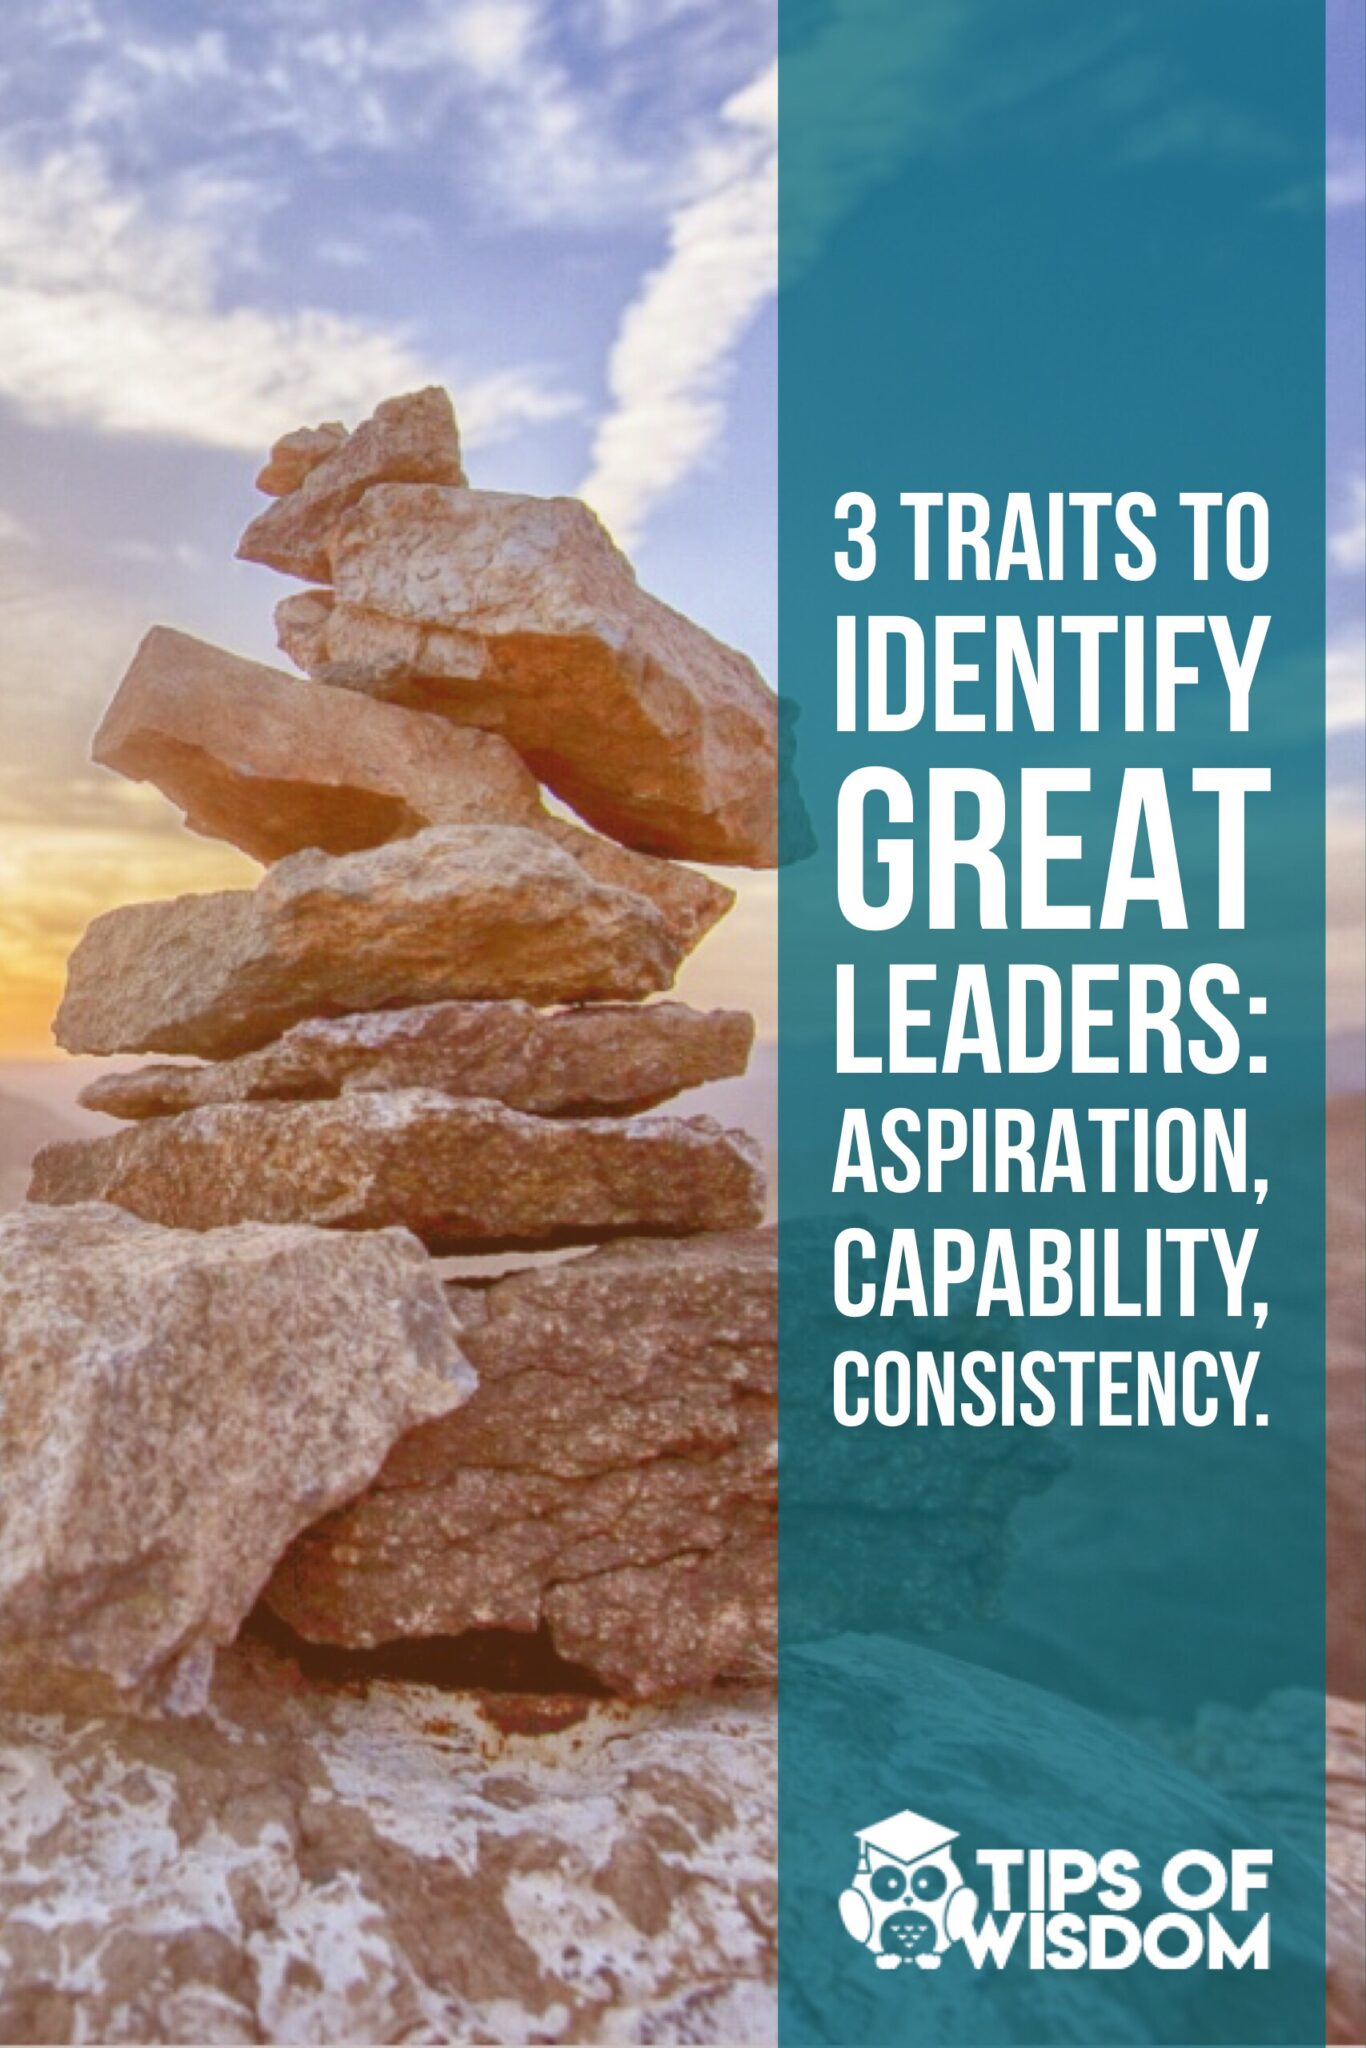 3 Traits to Identify Great Leaders: Aspiration, Capability, Consistency.